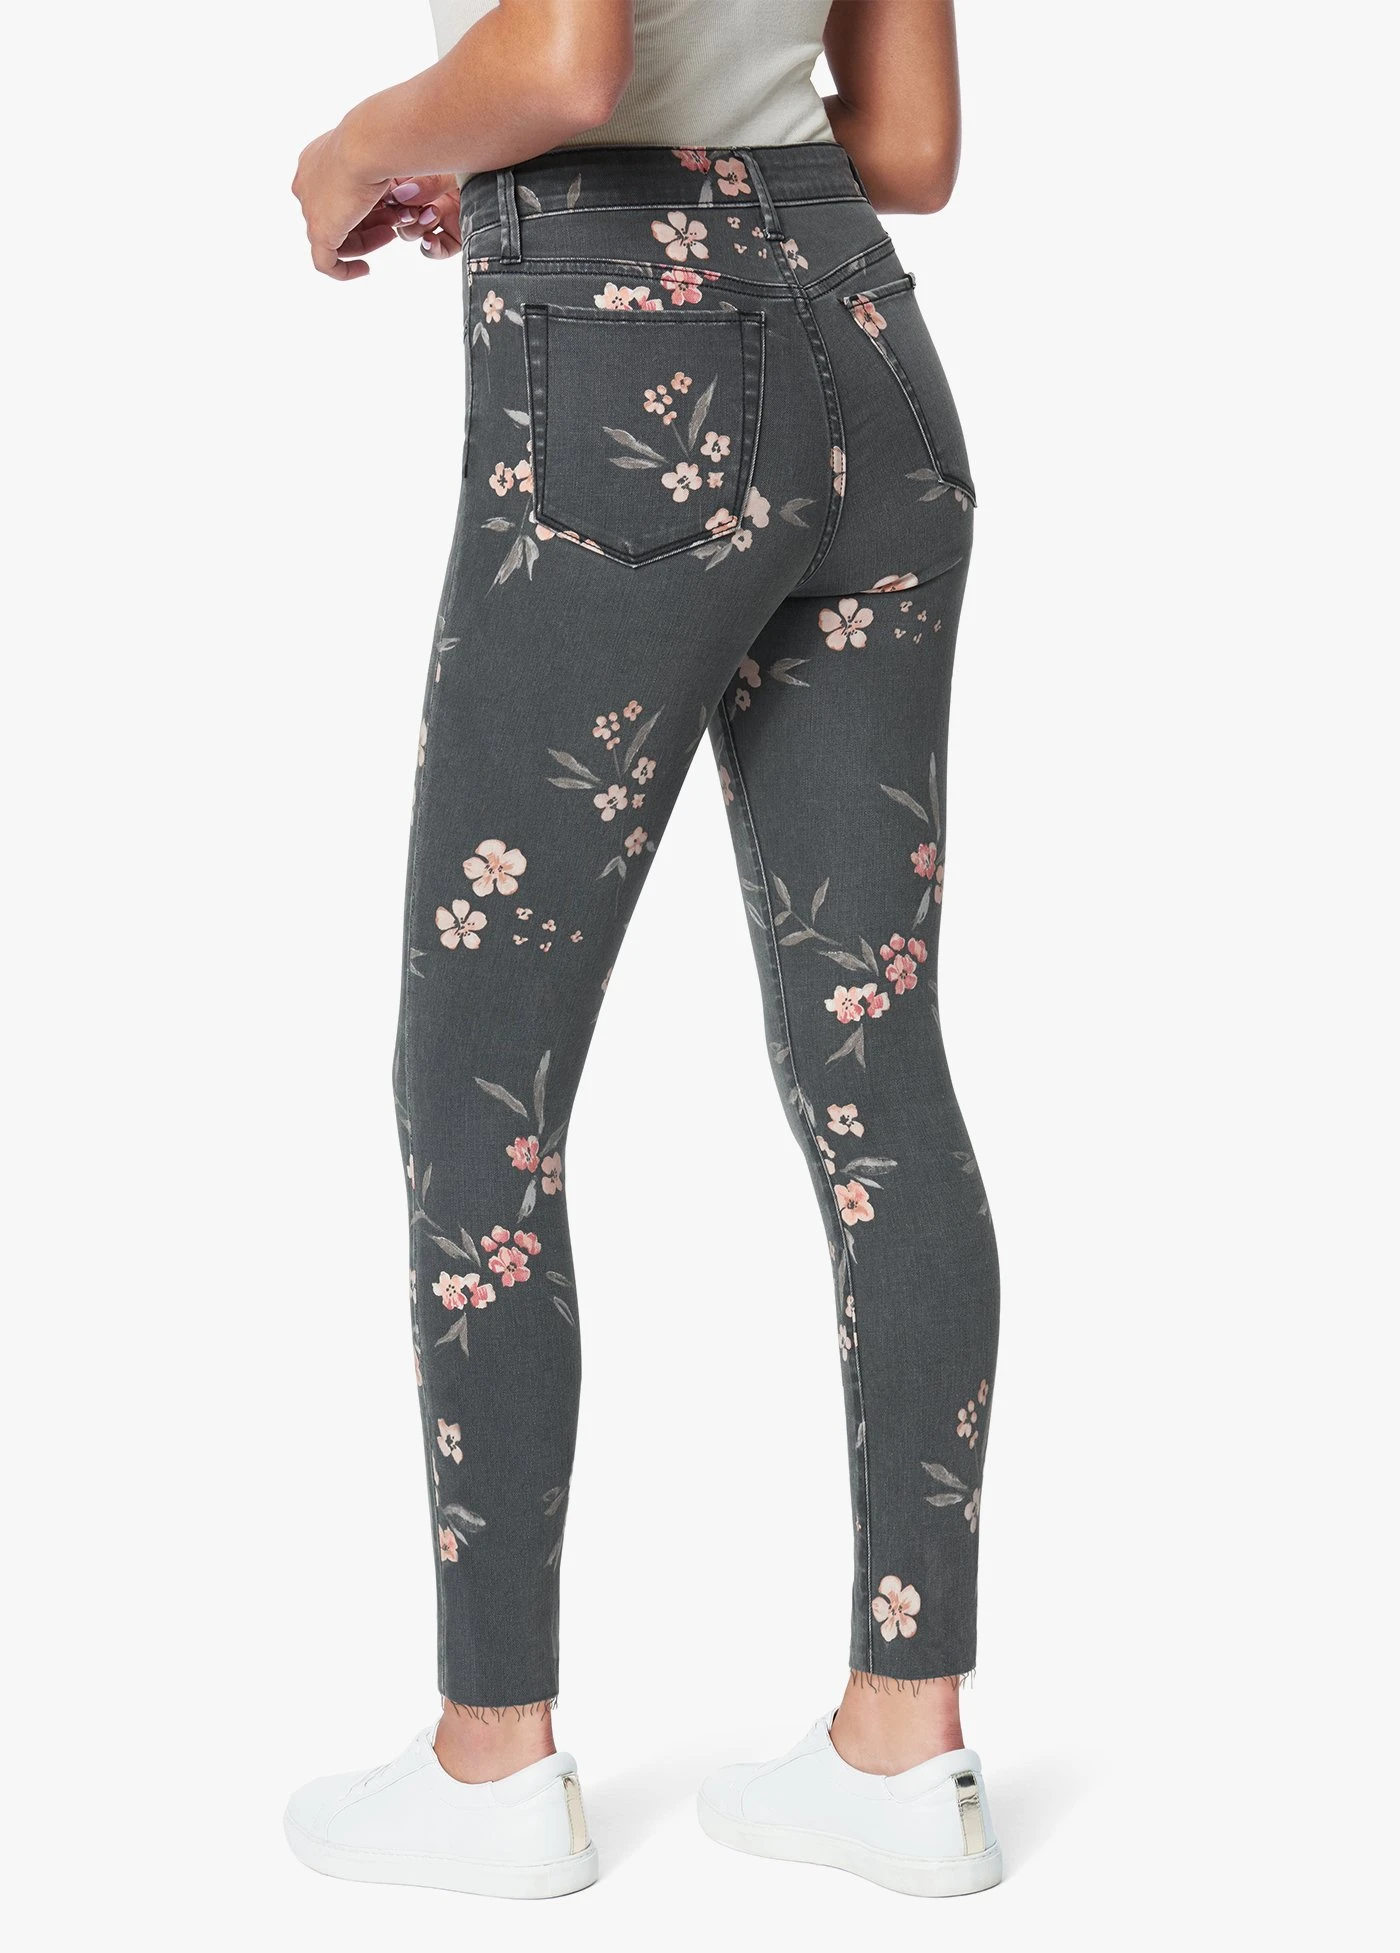 PAINTED BLOSSOM DENIM – SHOP THE LOOK